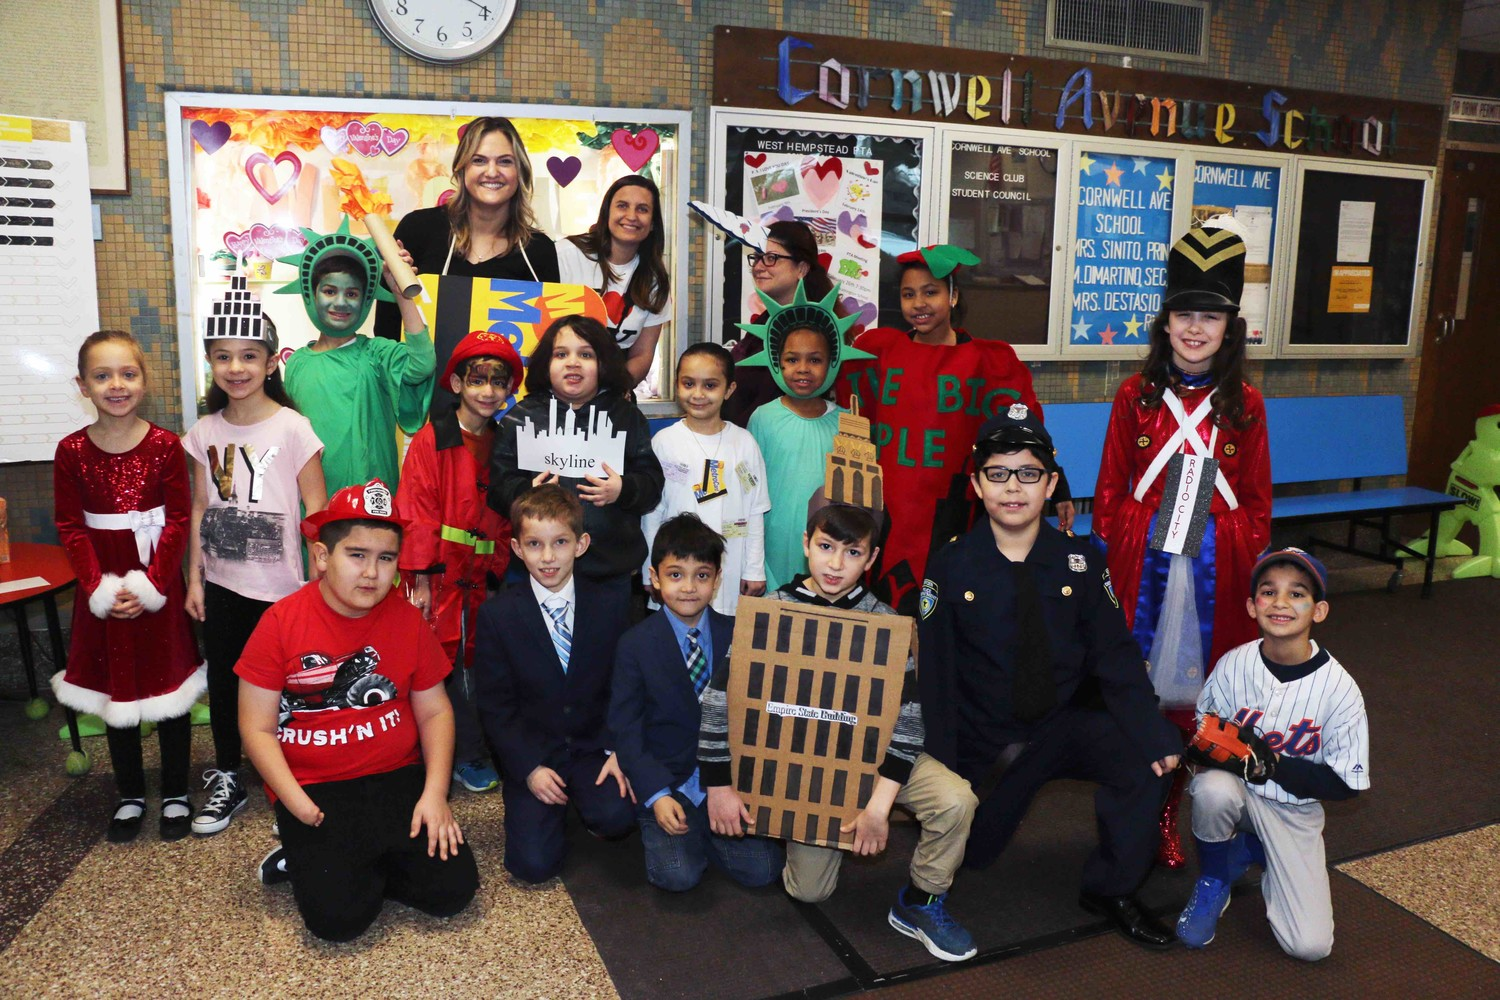 Cornwell Avenue Elementary School students kicked off Literacy Week by donning costumes that represented New York City during a Vocabulary Day Parade.